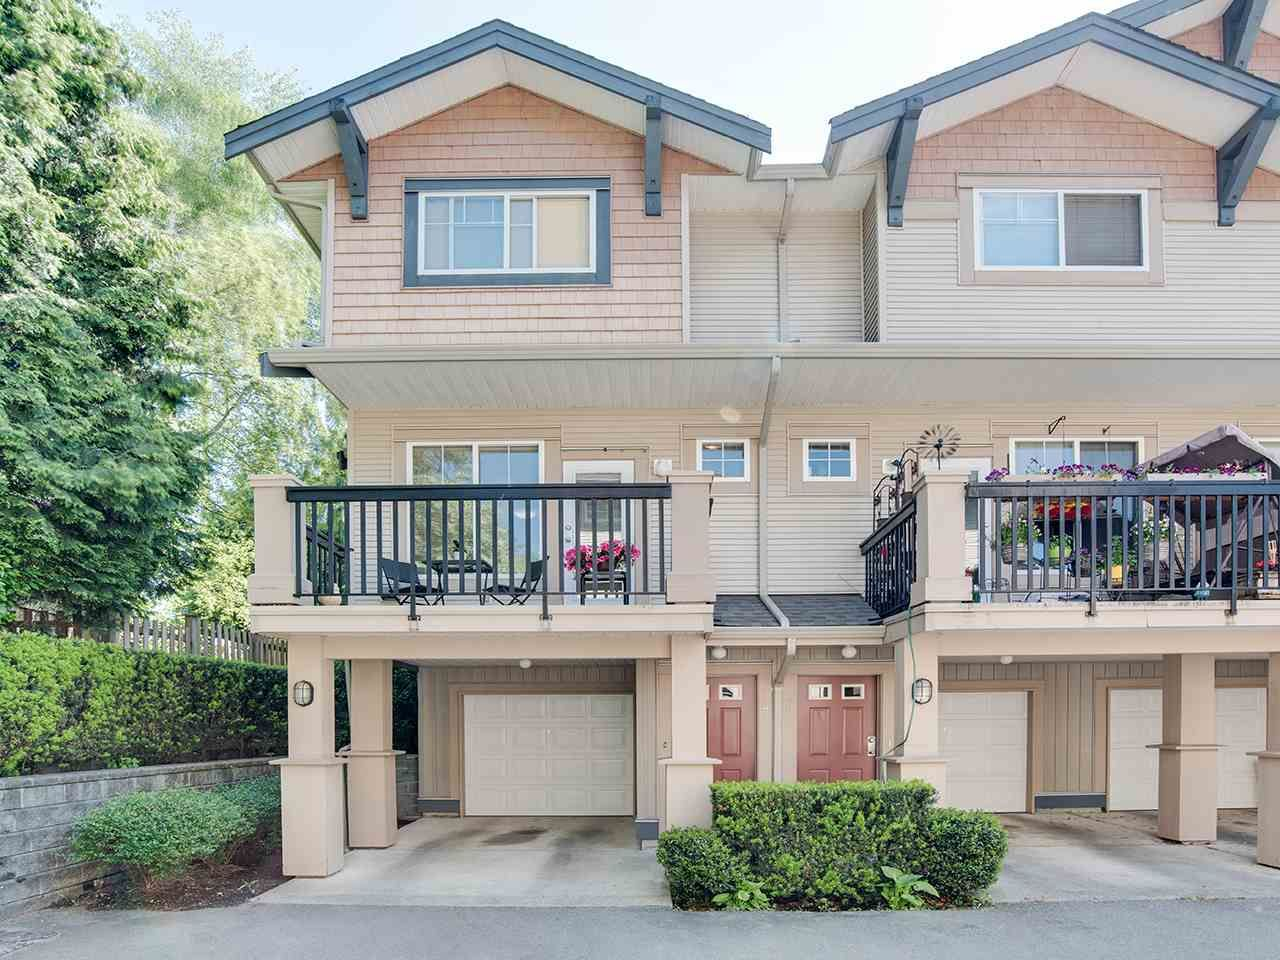 """Main Photo: 48 5839 PANORAMA Drive in Surrey: Sullivan Station Townhouse for sale in """"FOREST GATE"""" : MLS®# R2373372"""